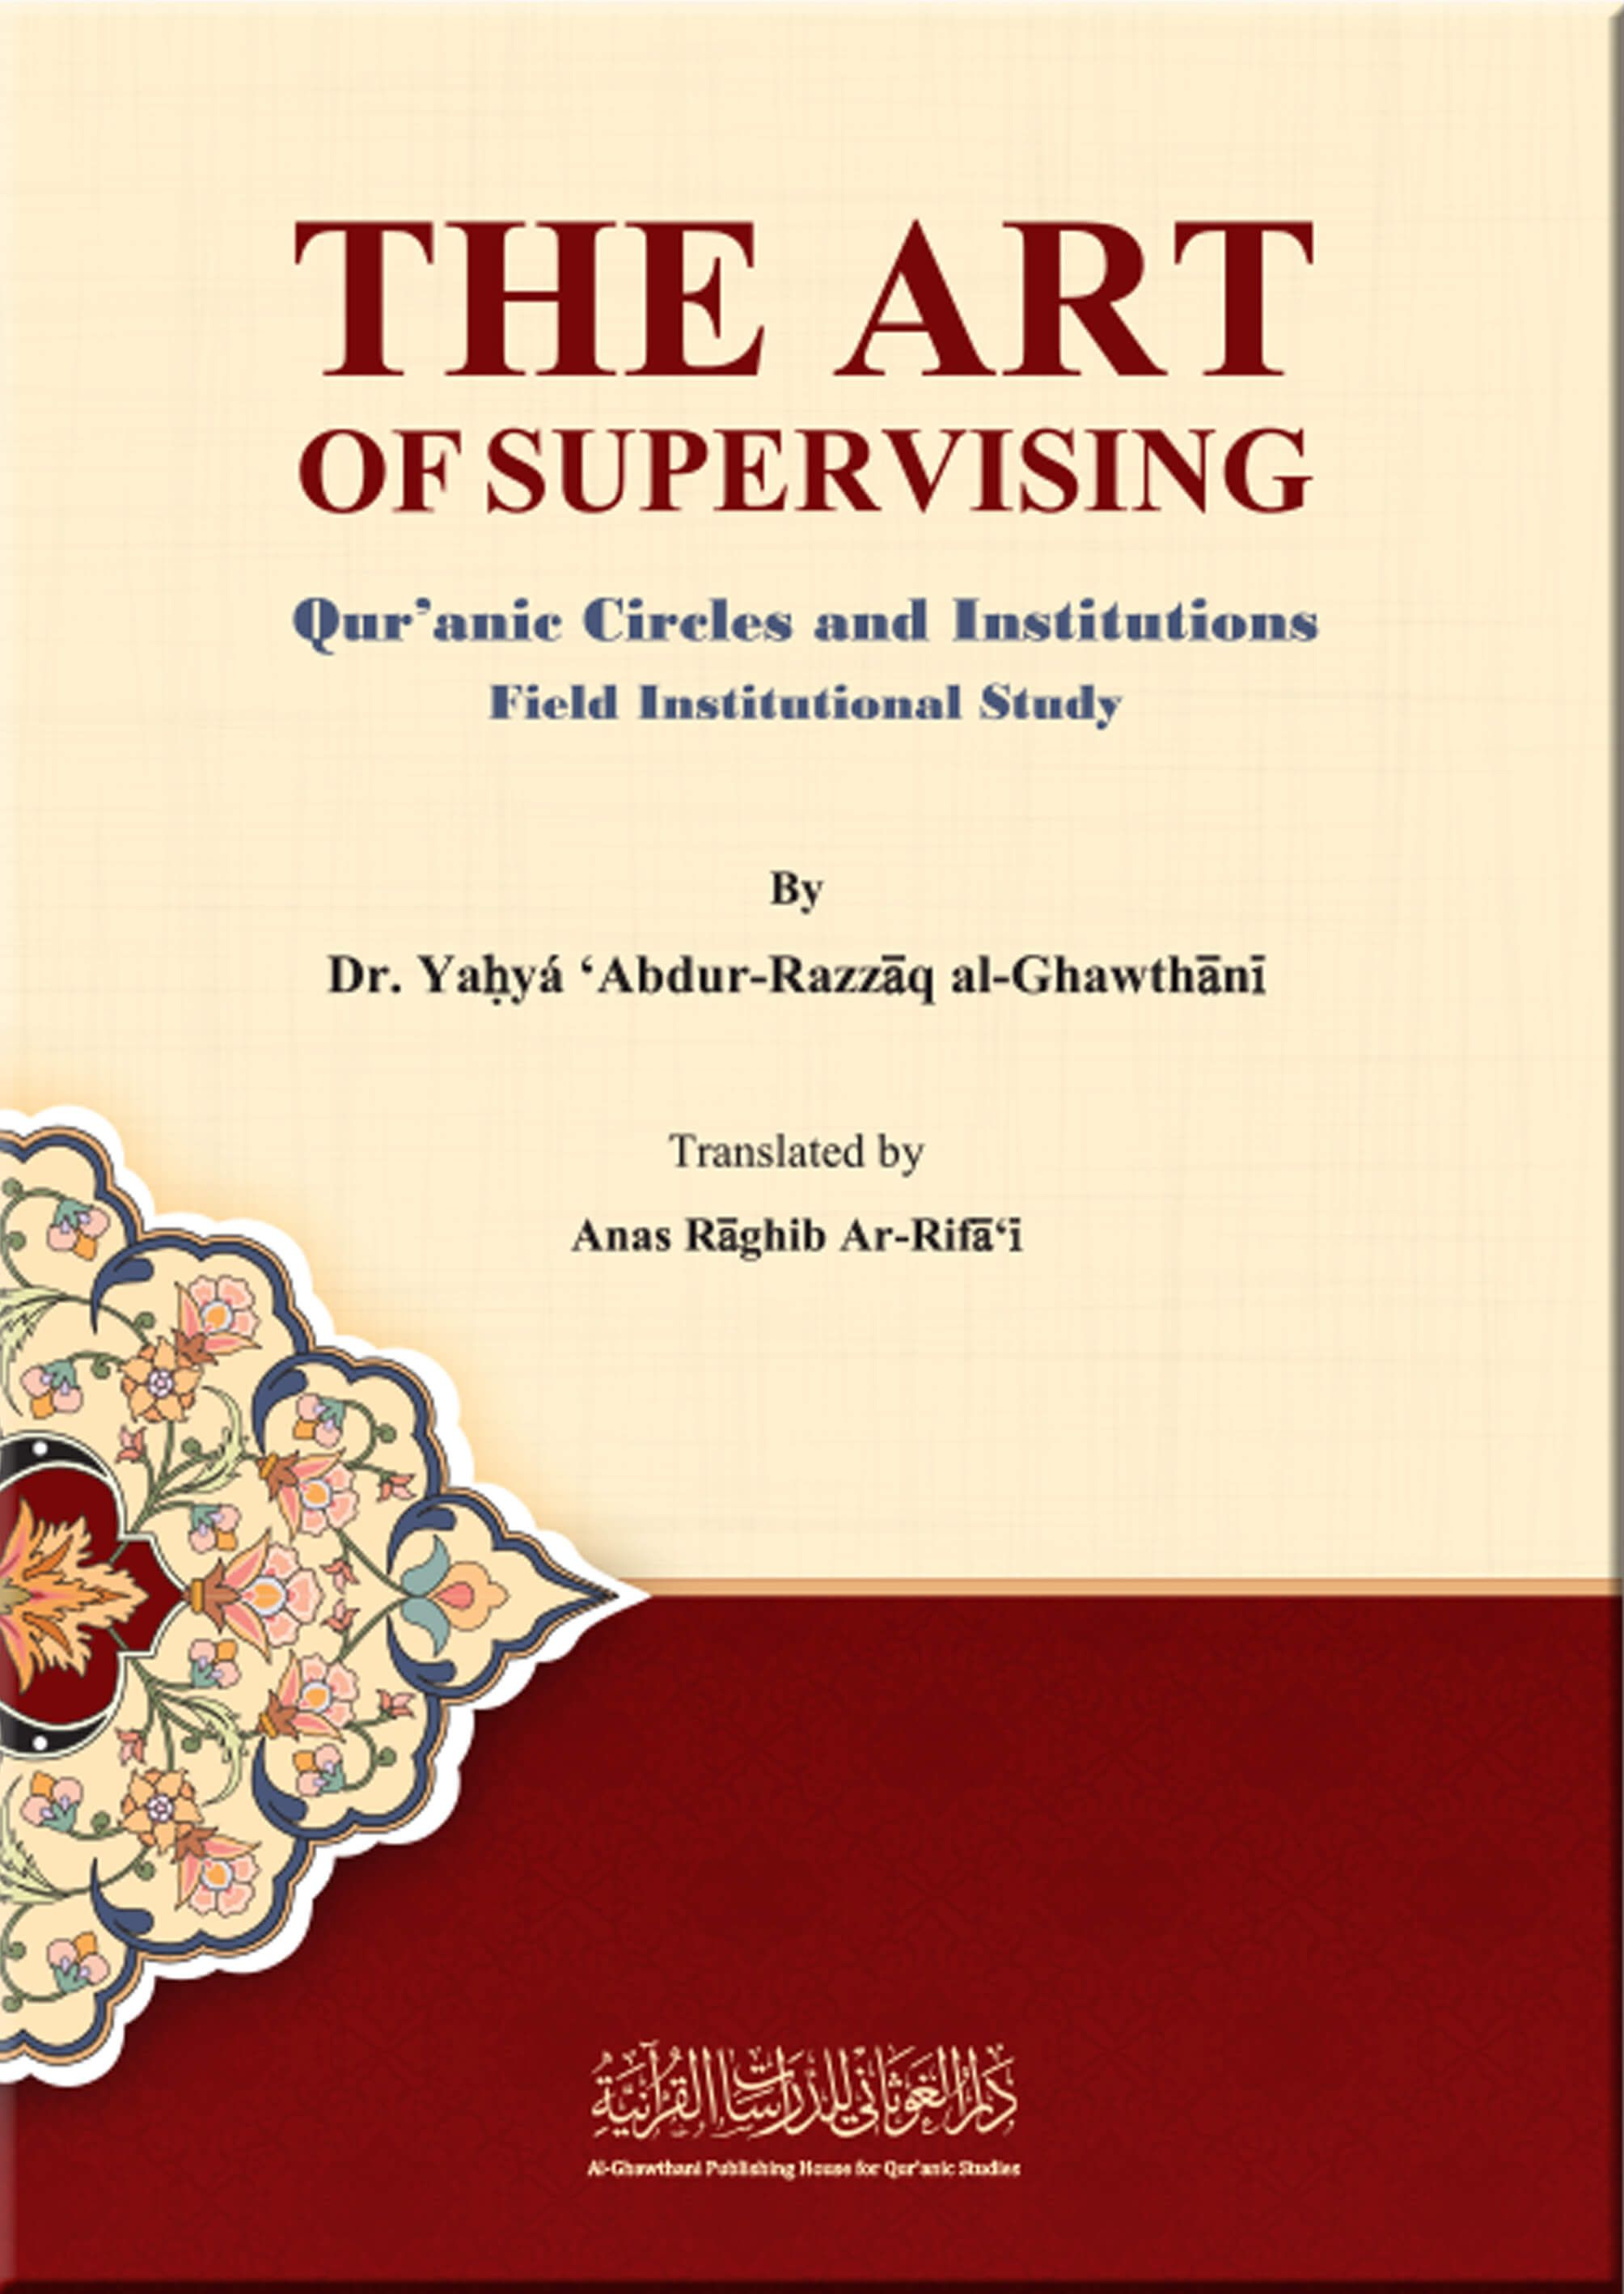 Art of Supervising Quranic Circles and Institutions (English)